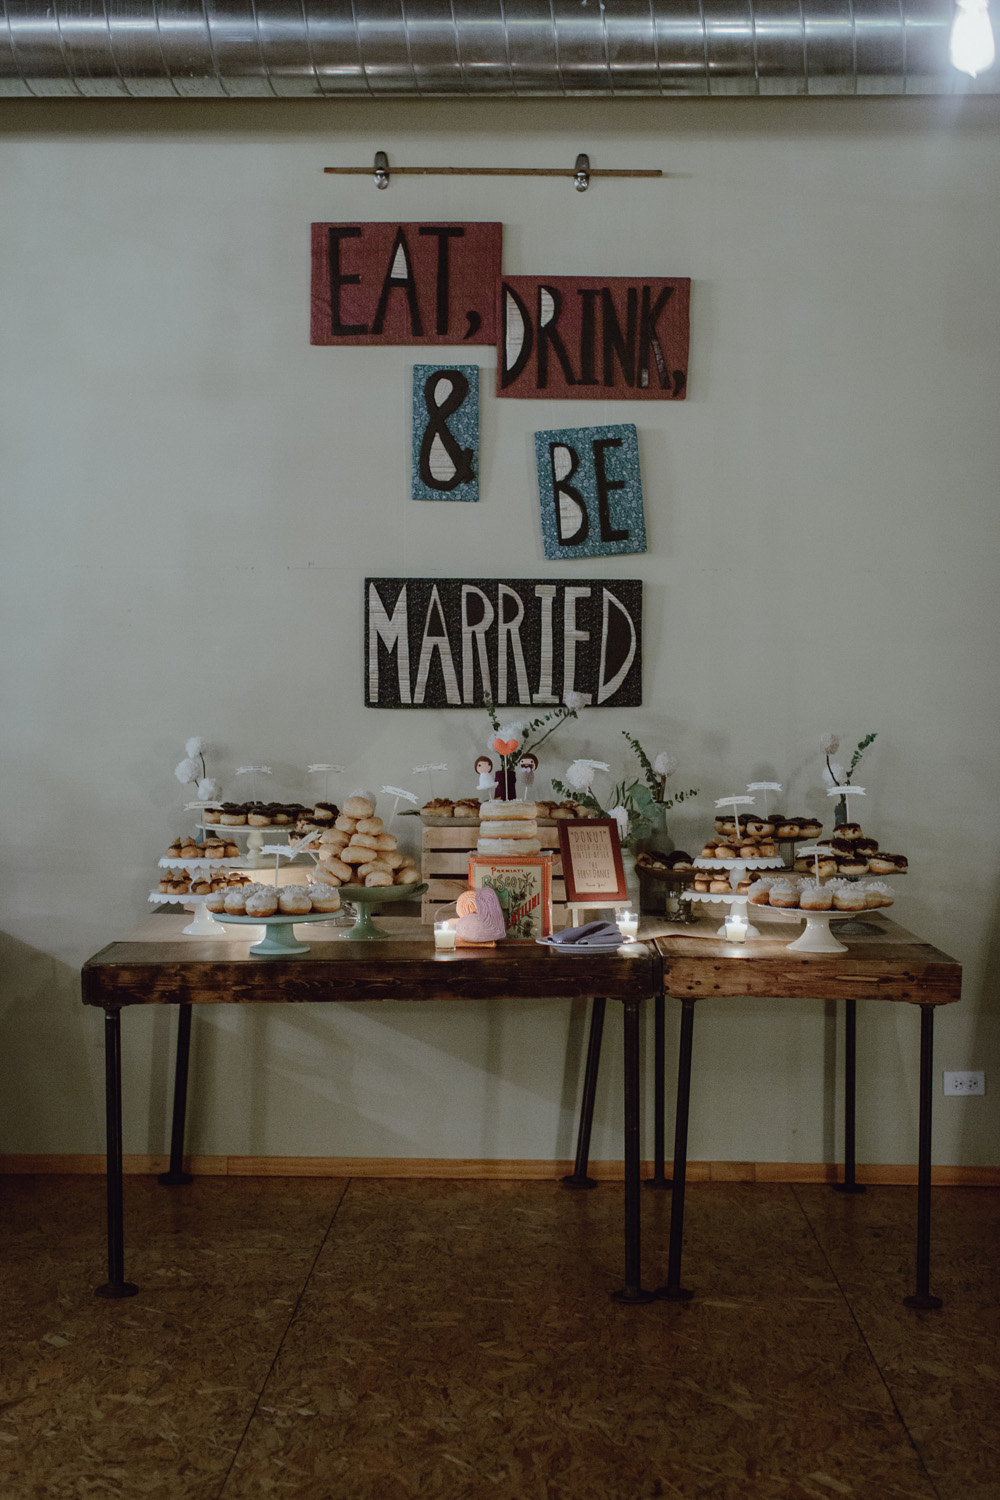 chicago-wedding-photography-at-city-view-loft-by-megan-saul-photography-reception-details-3-of-42